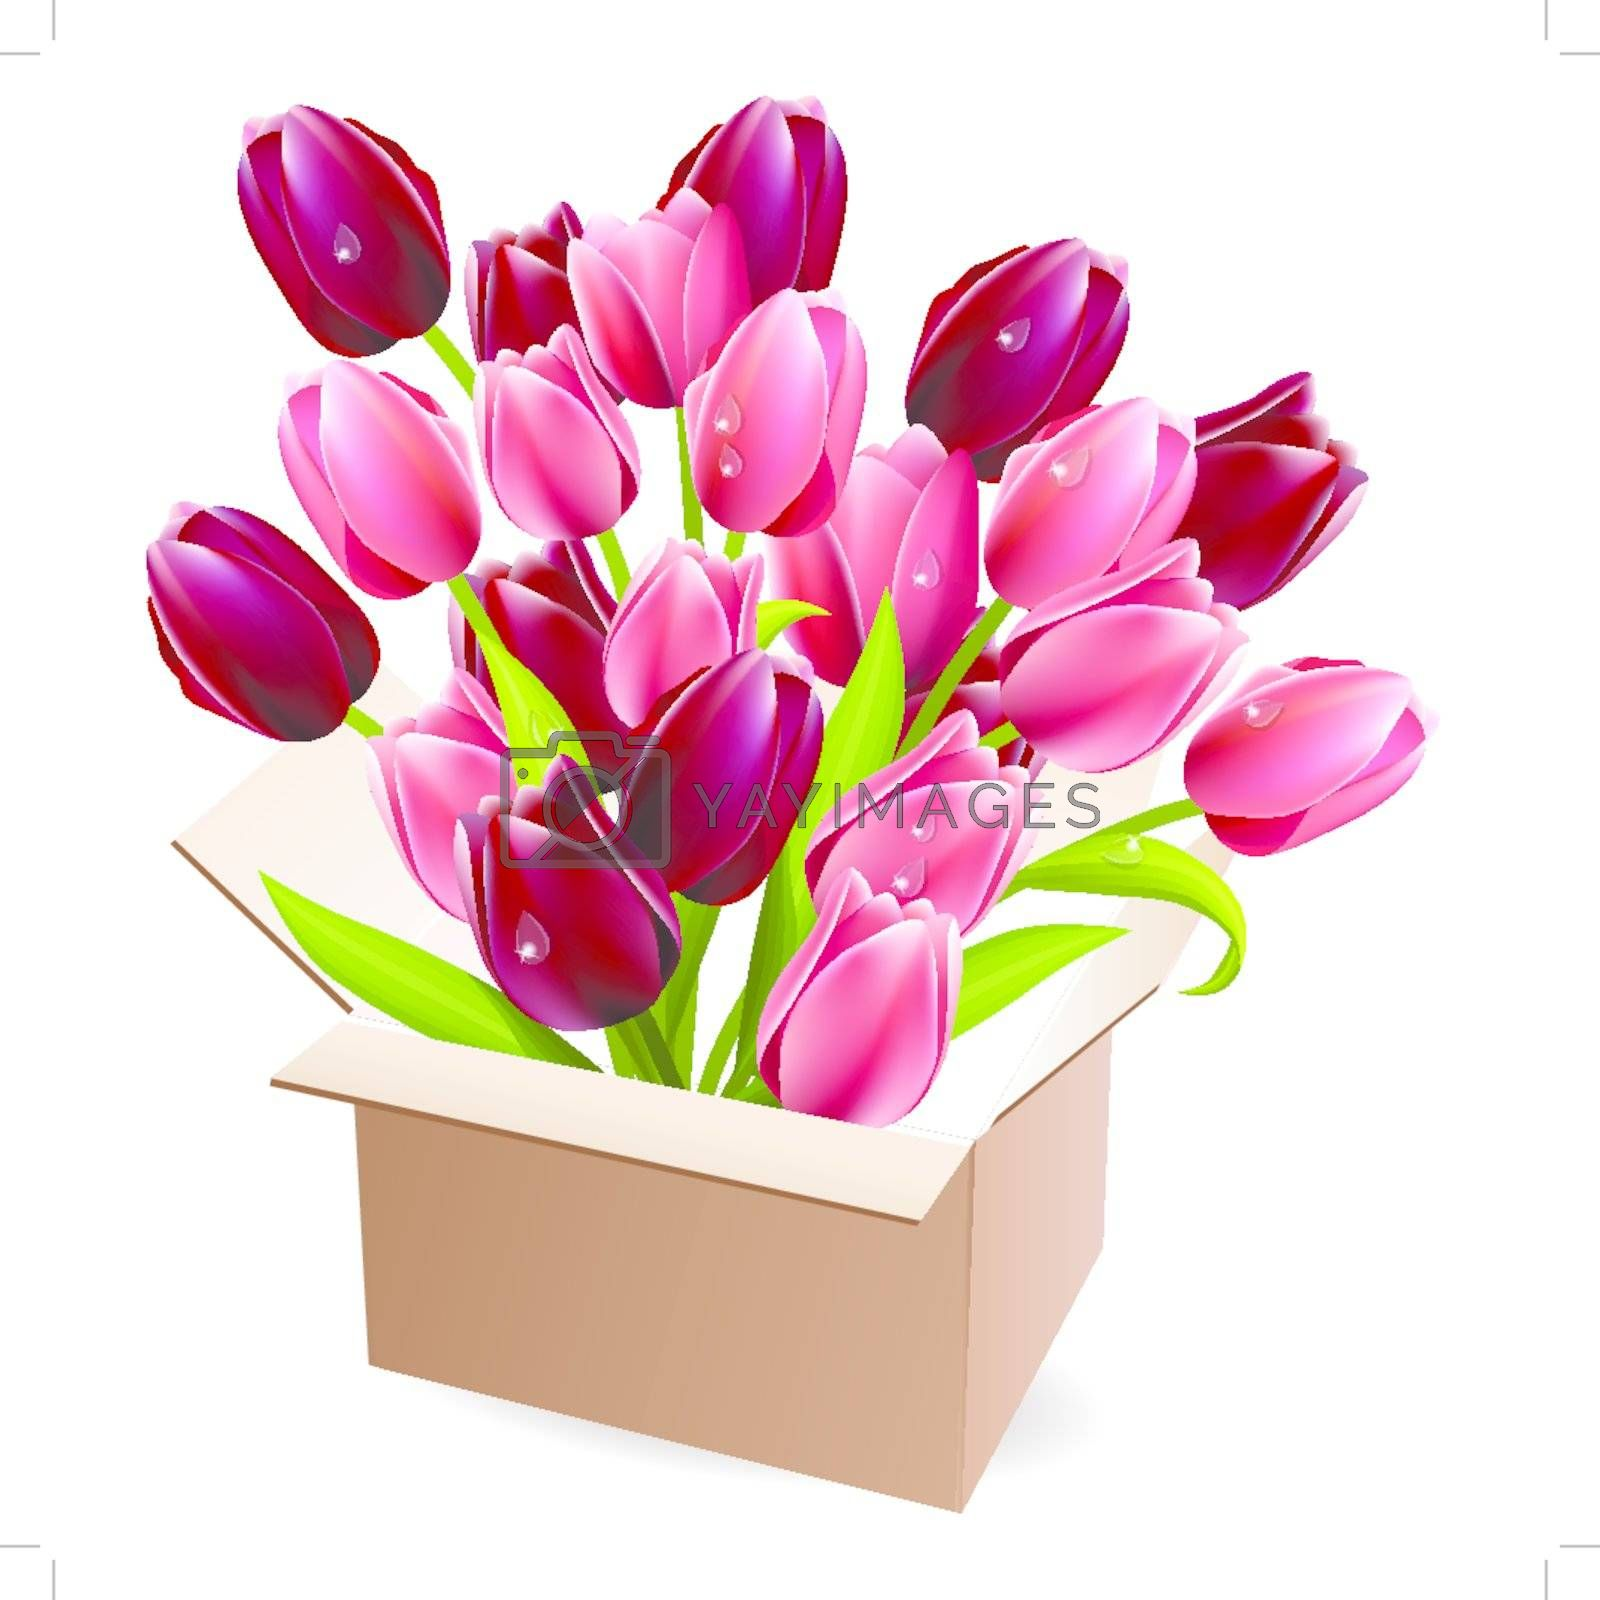 Open box full of red and purple tulips